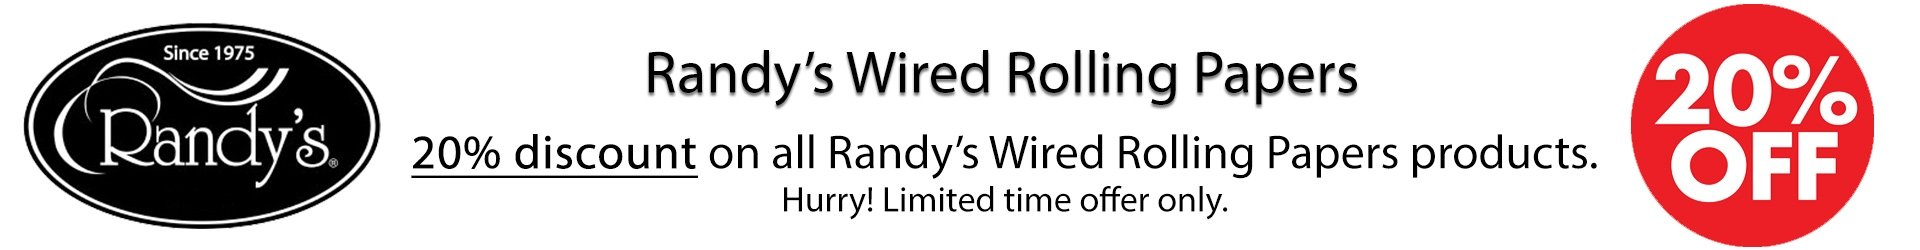 Randys Wired Rolling Papers